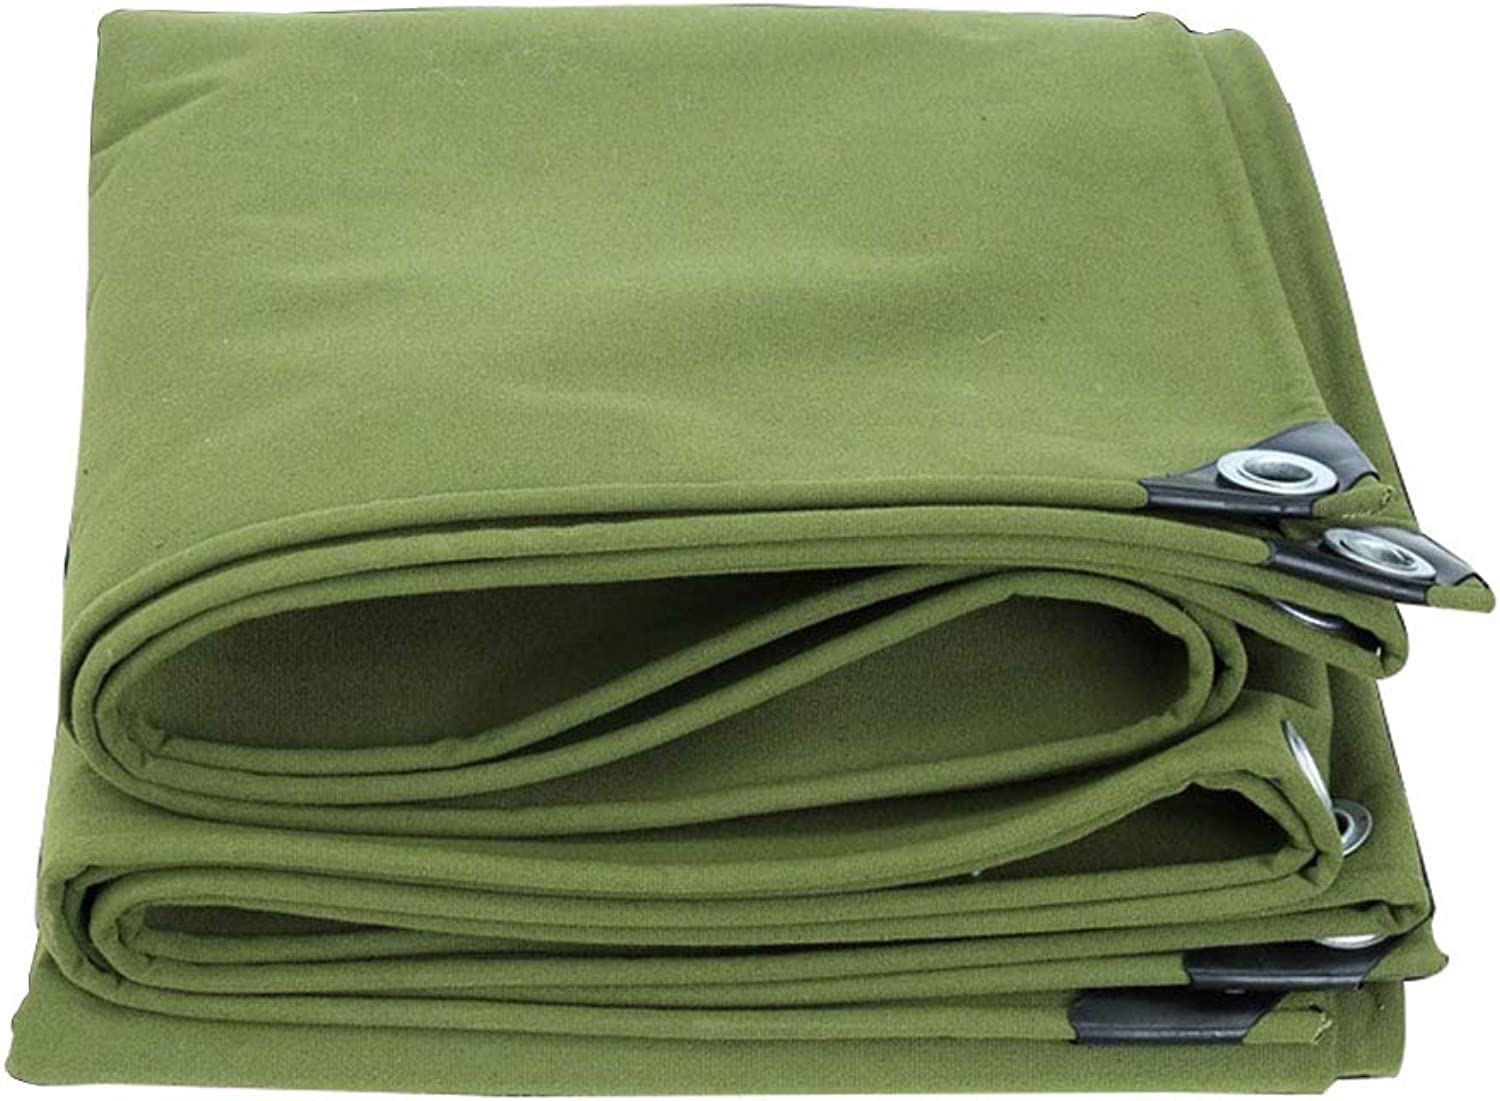 Truck Transport Tarpaulin   Indoor and Outdoor Predective Cover   Sunscreen Shade Cloth  Green   Weight  600g   Square Meter